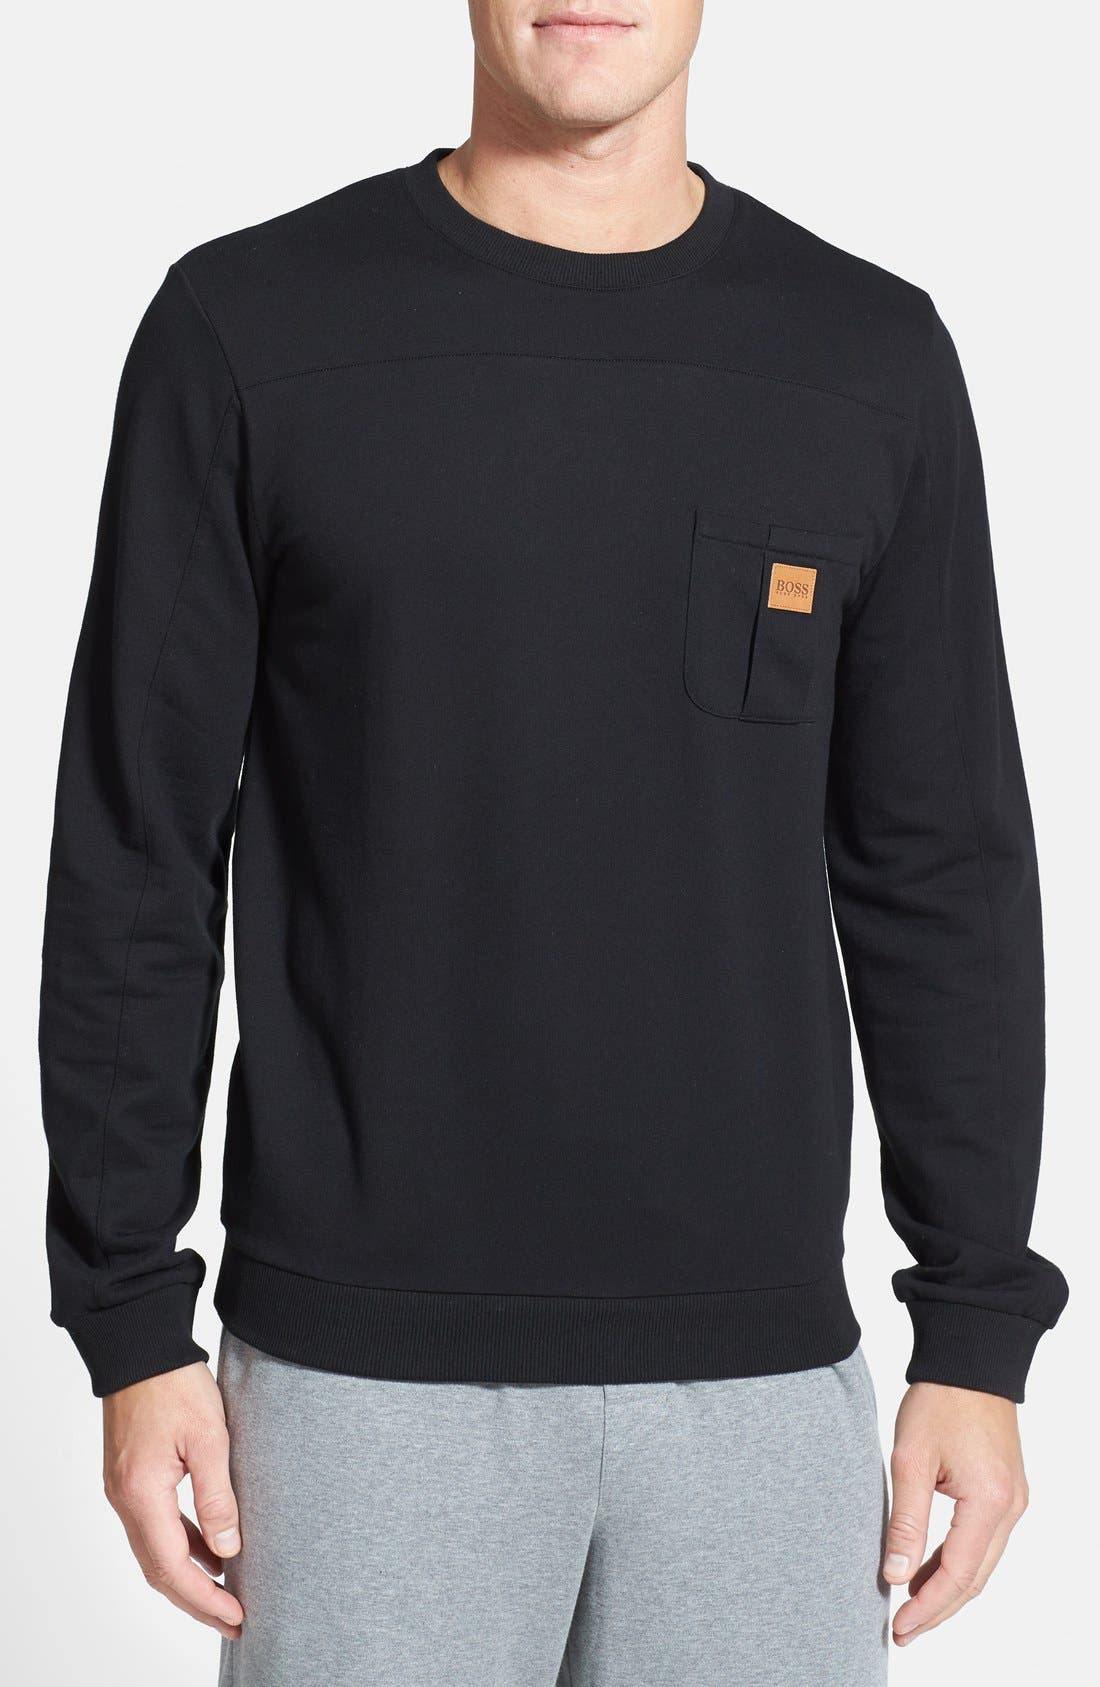 Main Image - BOSS HUGO BOSS 'Innovation 6' Sweatshirt